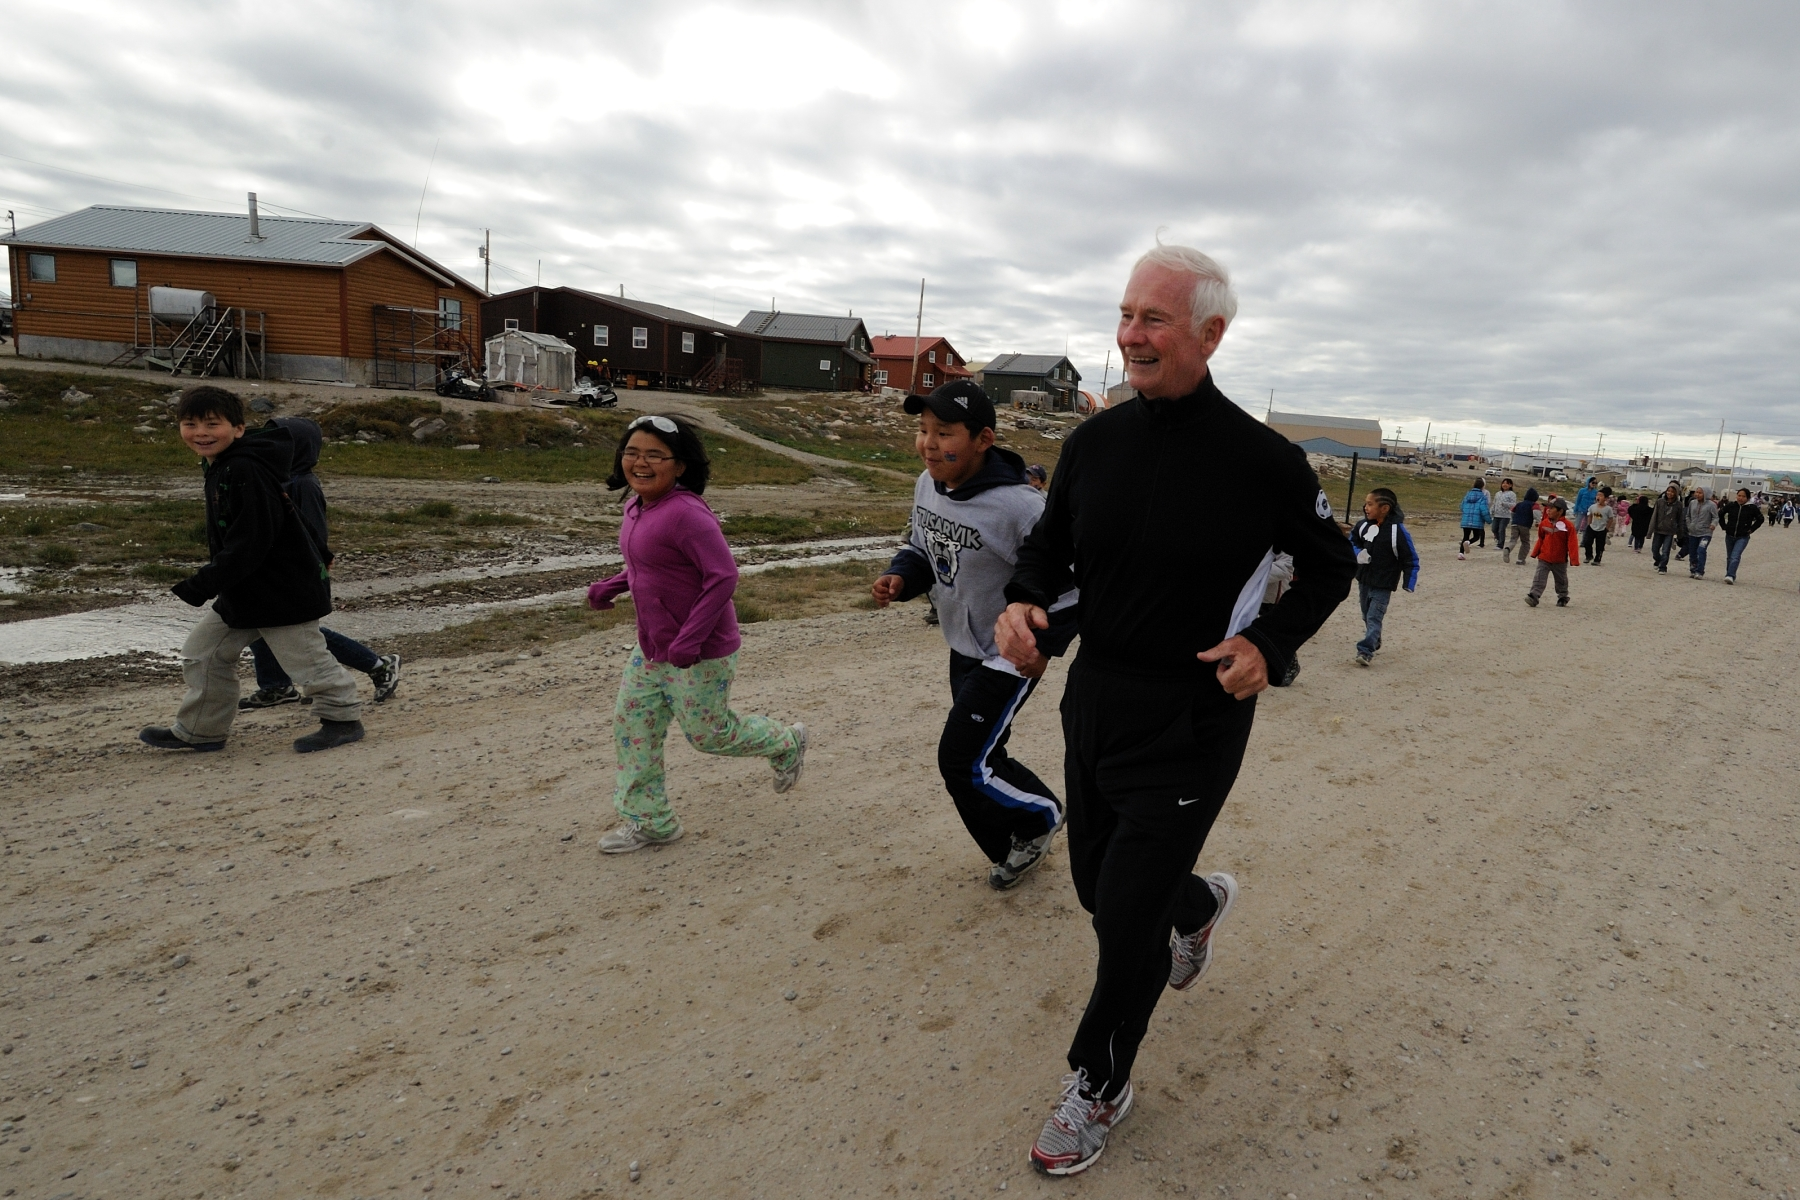 The Governor General participated in the Repulse Bay annual Terry Fox School Run with the students of the Tusarvik School.